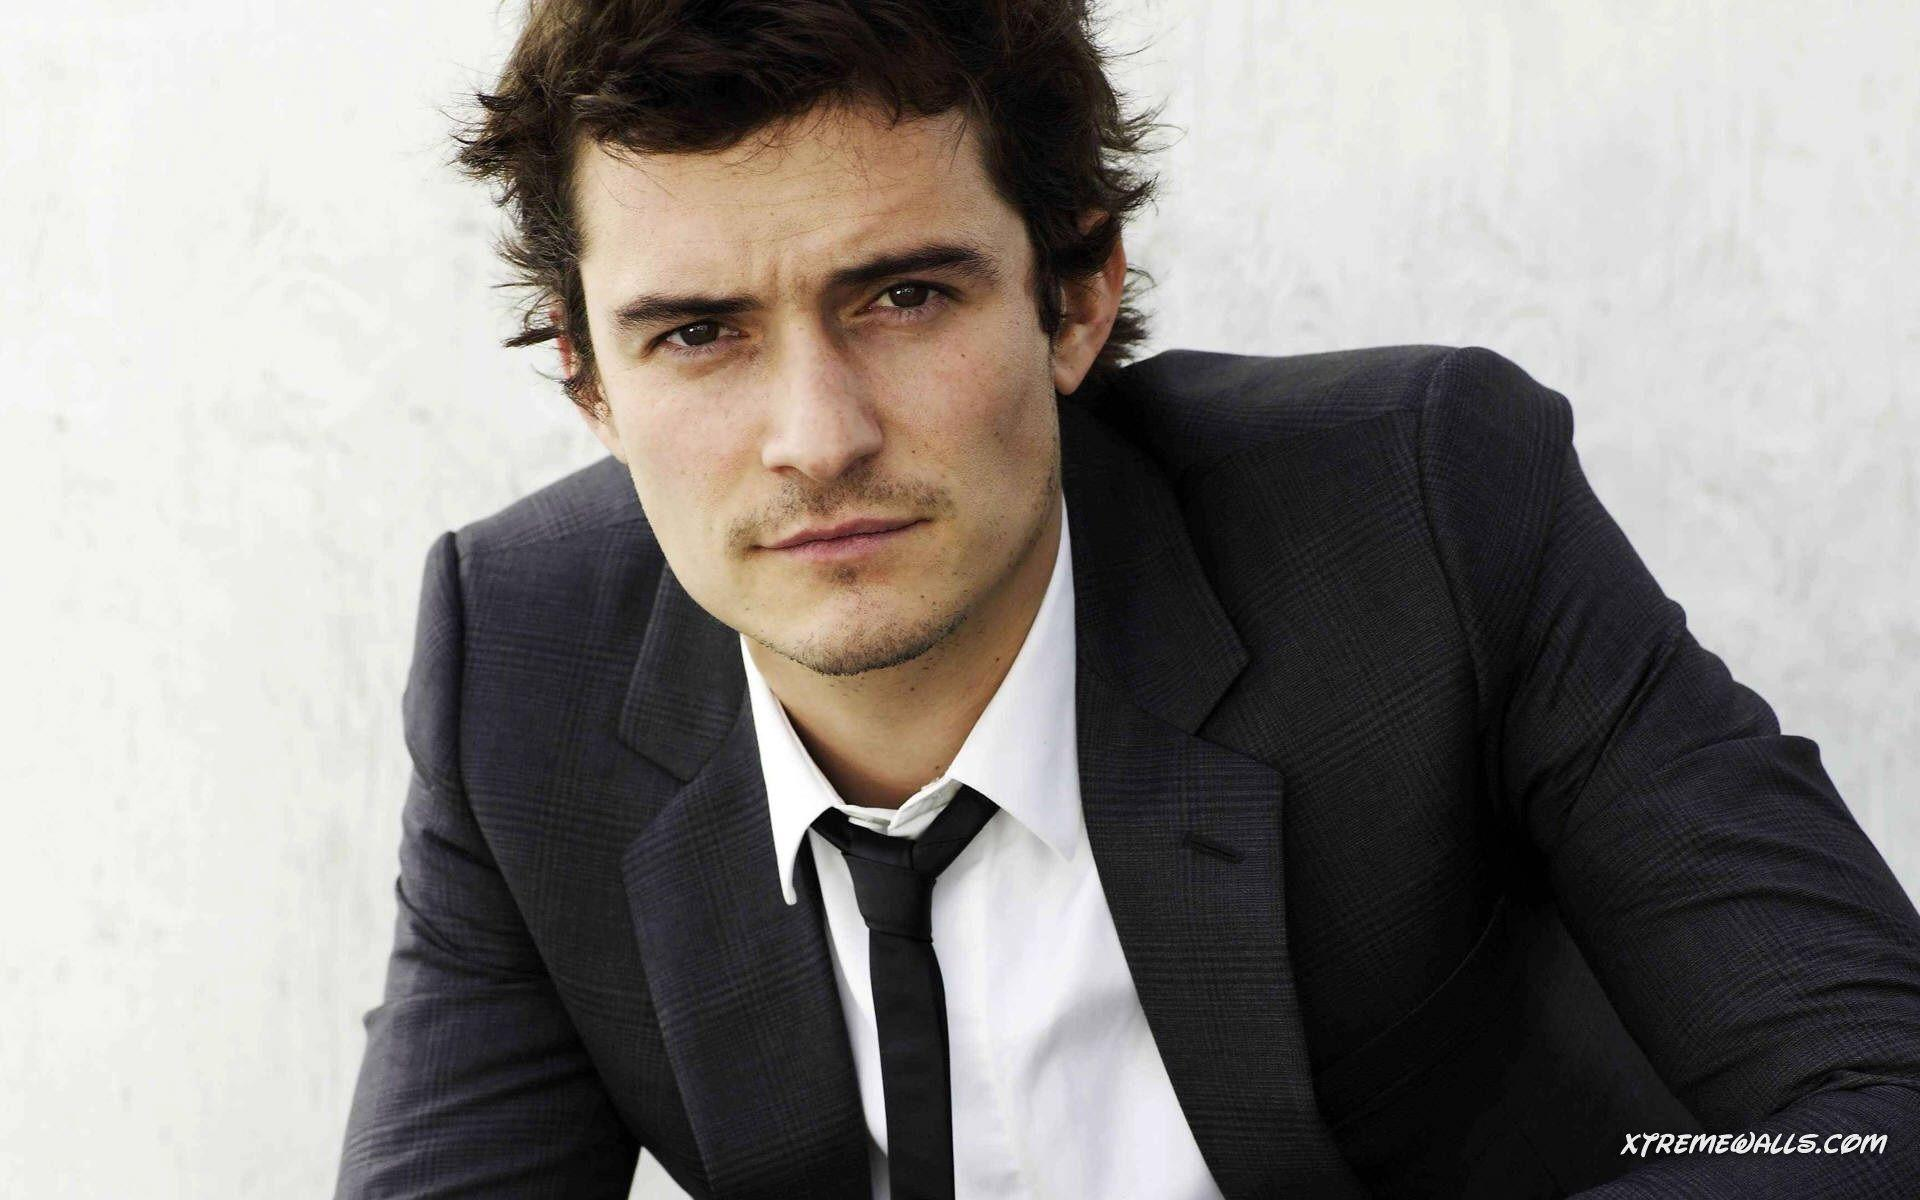 Orlando Bloom Wallpapers High Resolution and Quality Download